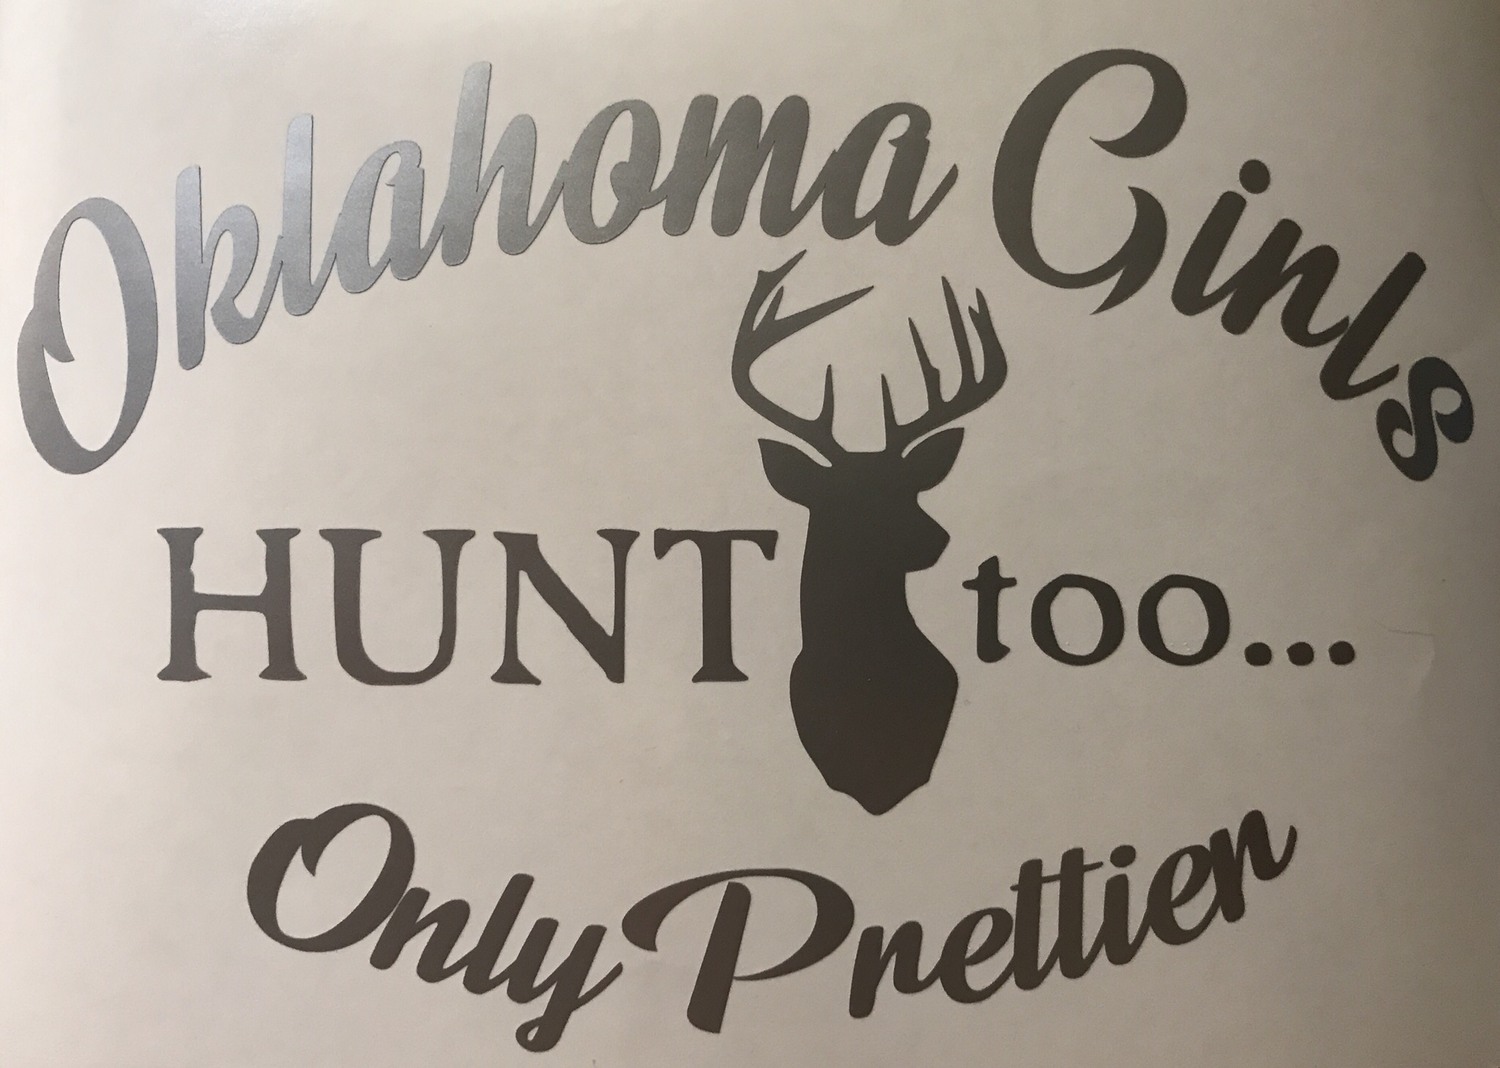 Girls Hunt Too, Customized